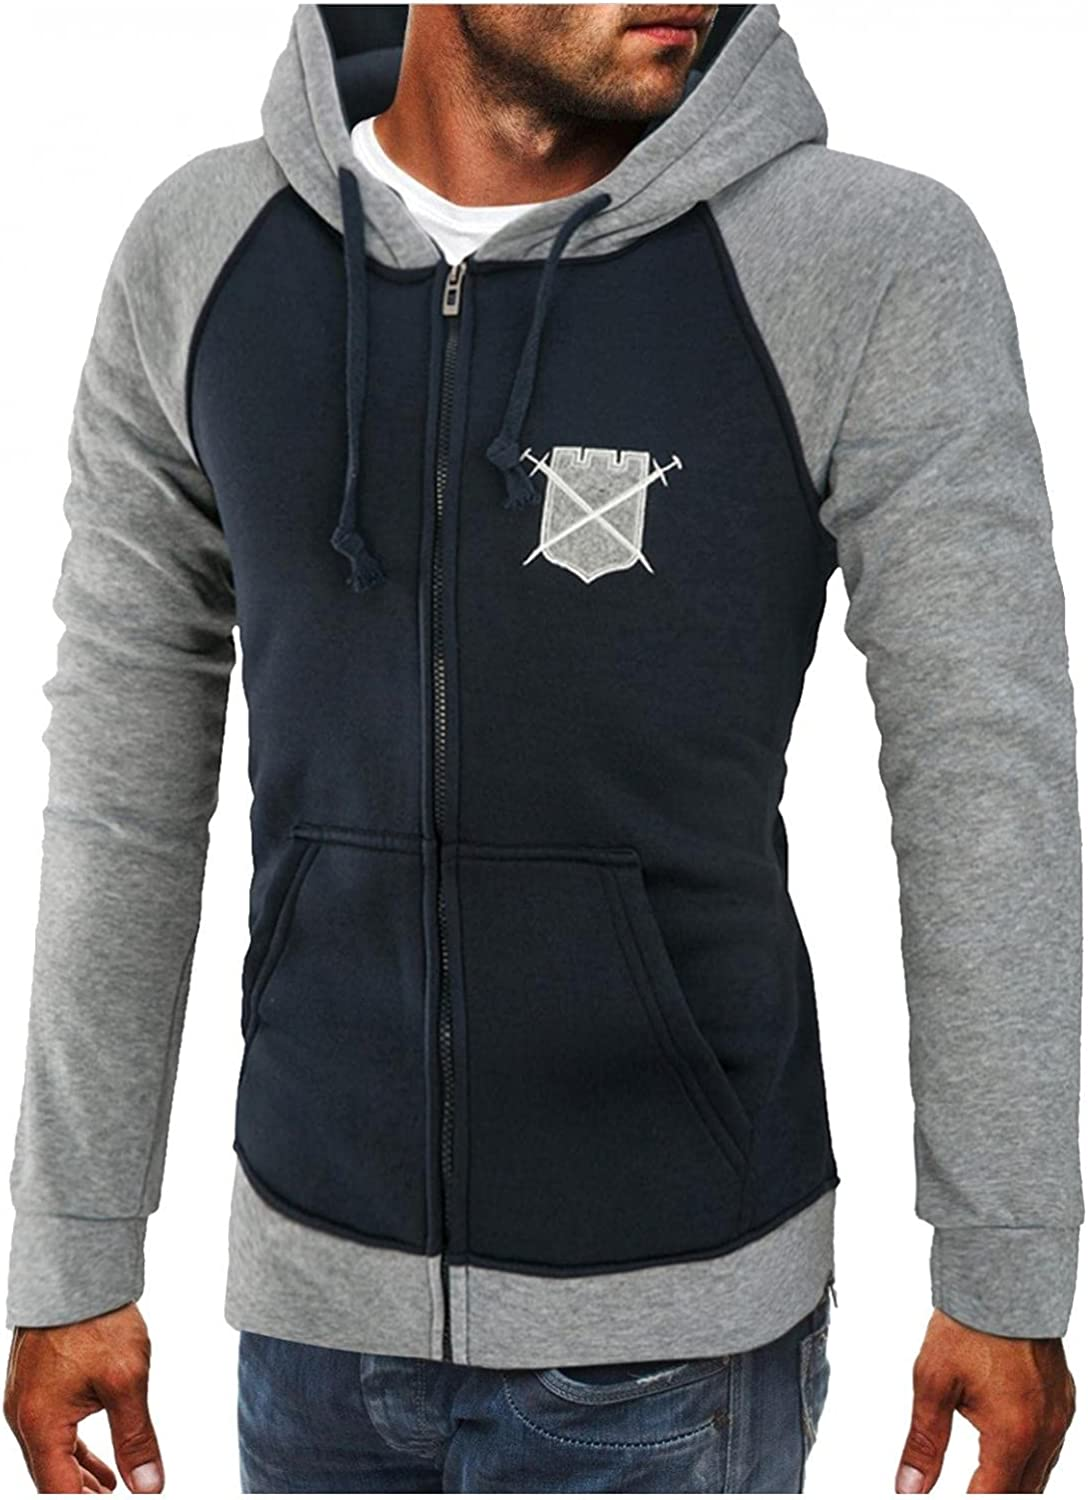 Qsctys Mens Sweatshirts Zip up Casual Patchwork Fashion Hoodie Jackets Cotton Blend Lightweight College Pullover Hooded